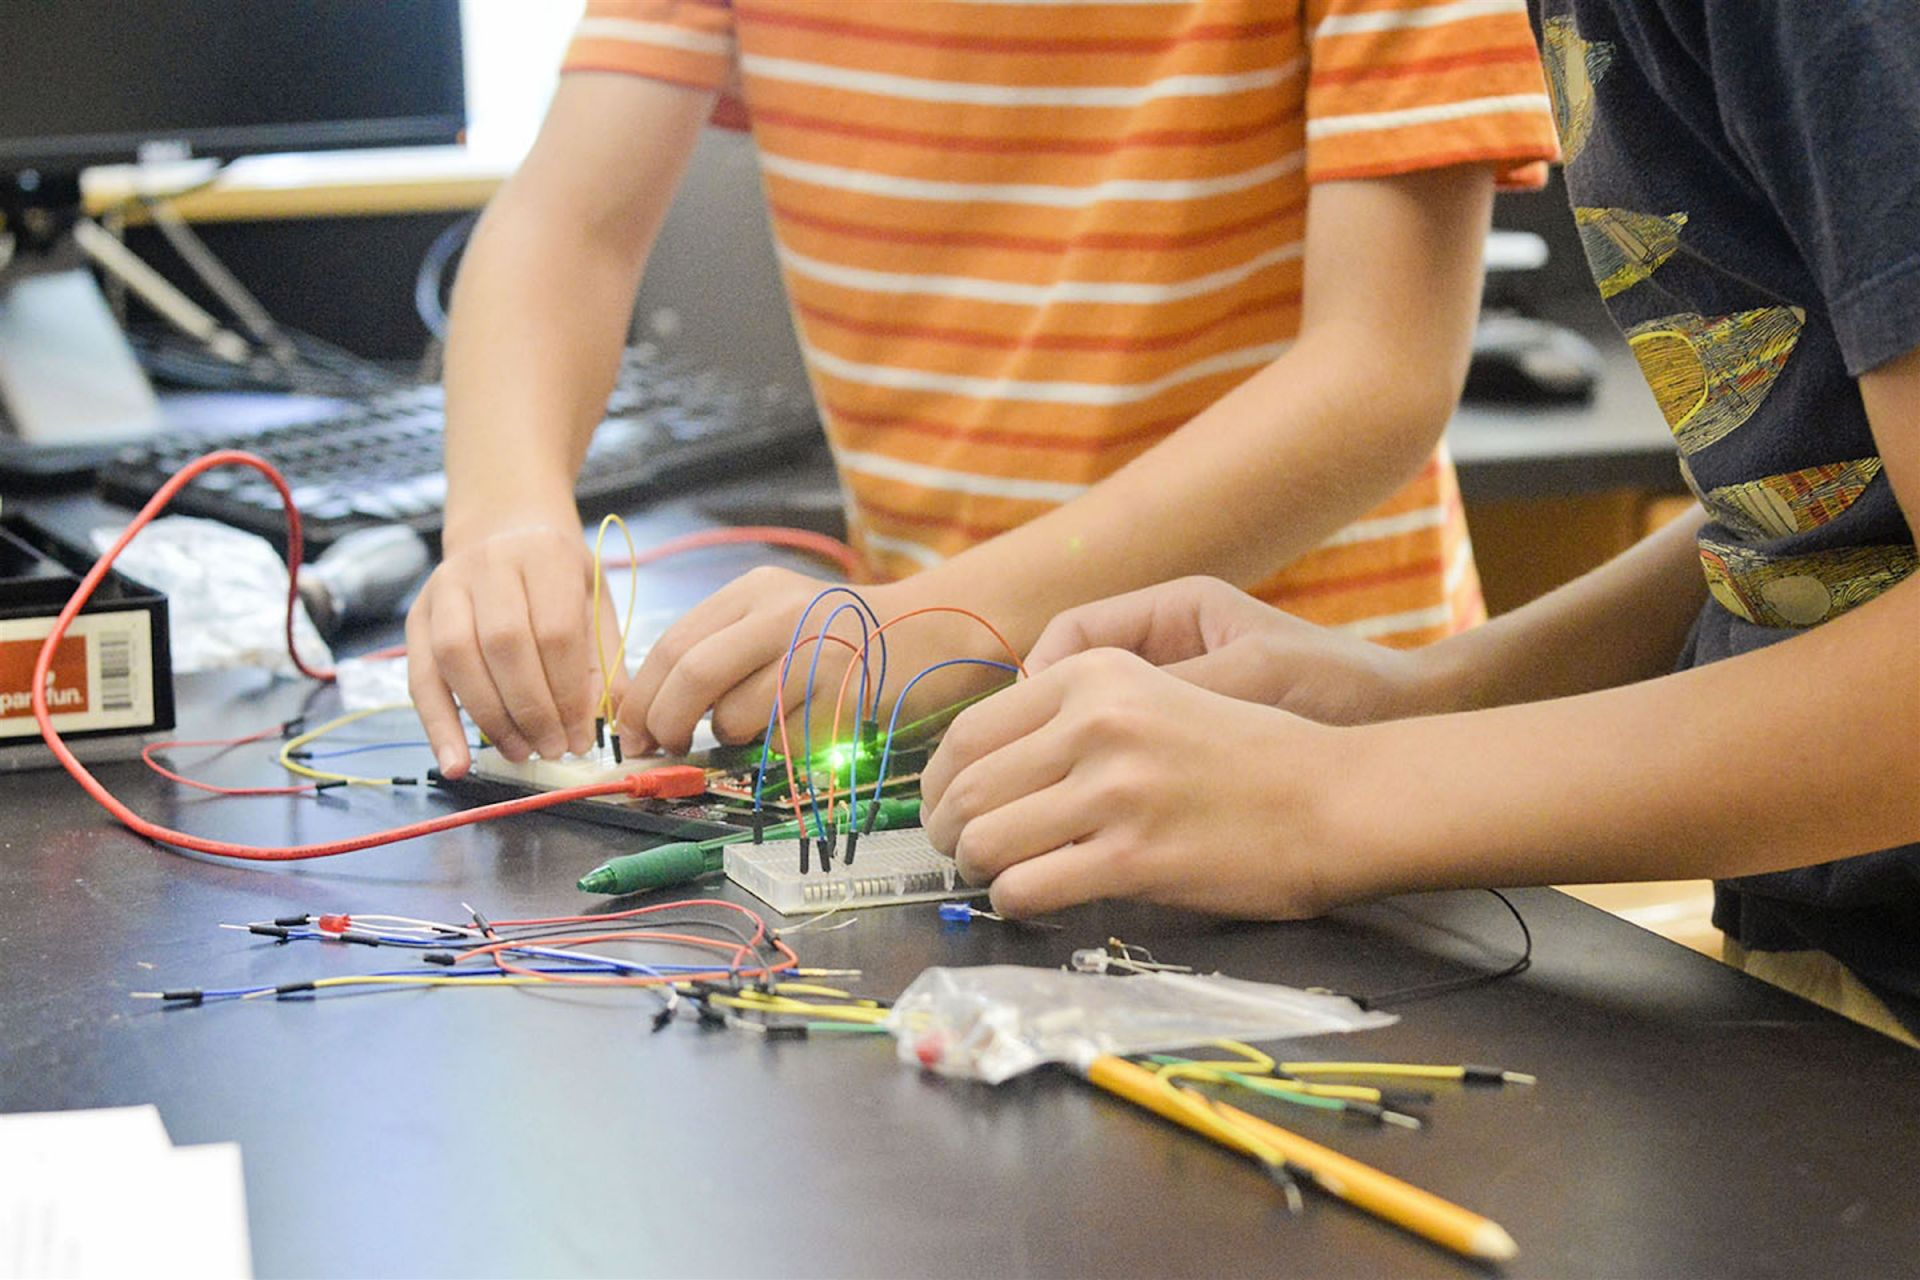 Campers have access to Fay's Innovation Lab, a 3,000 square-foot space that includes everything you need for inventing and making. Campers have opportunities throughout the summer to design and build in this safe and supervised setting.